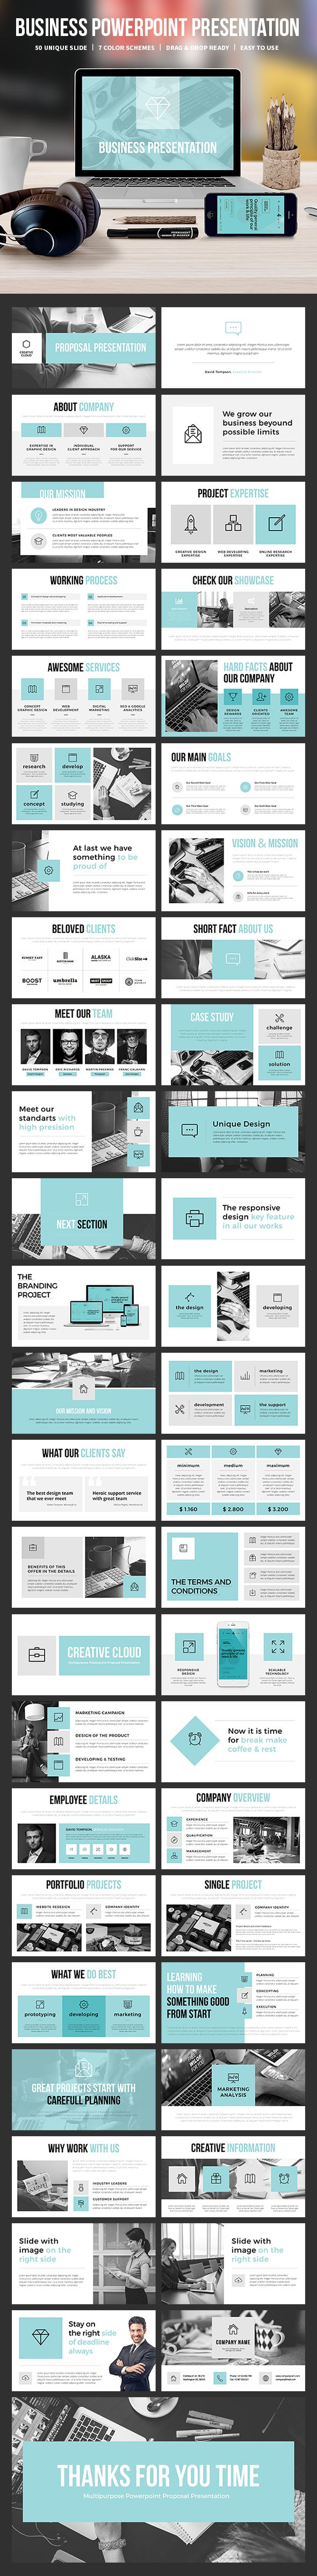 Best Free Presentation Templates Images On Pinterest - Fresh powerpoint business plan template scheme